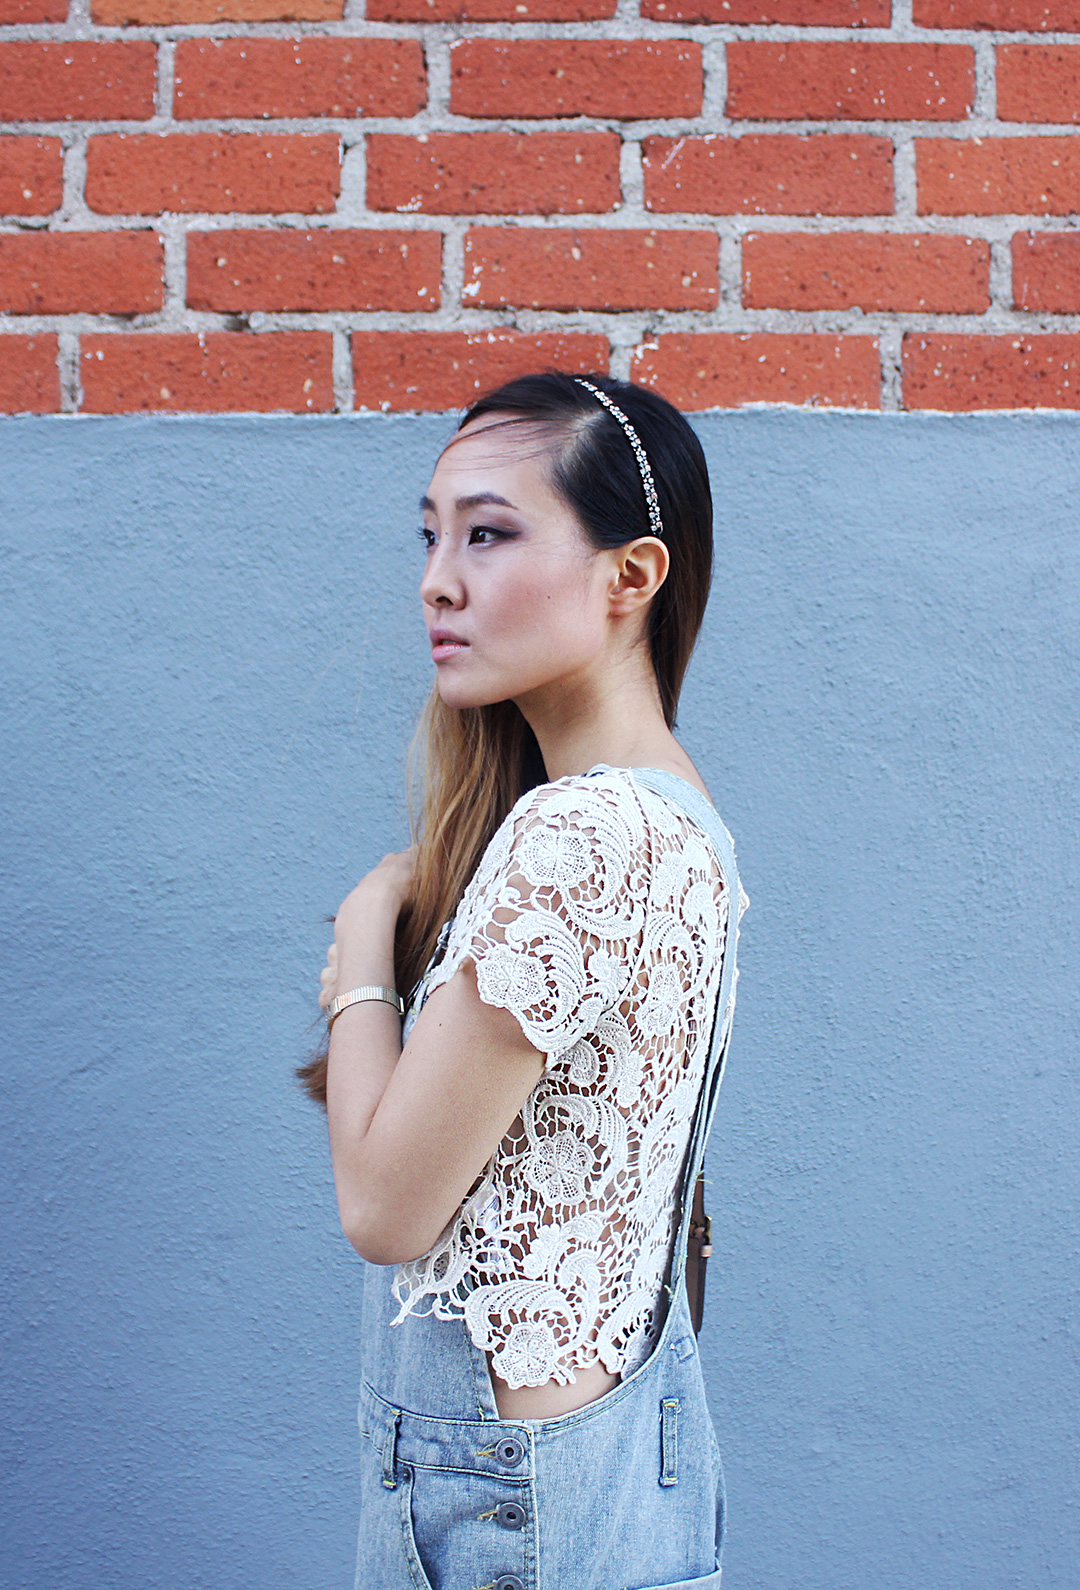 Lace crop top brings a feminine element to the entire look